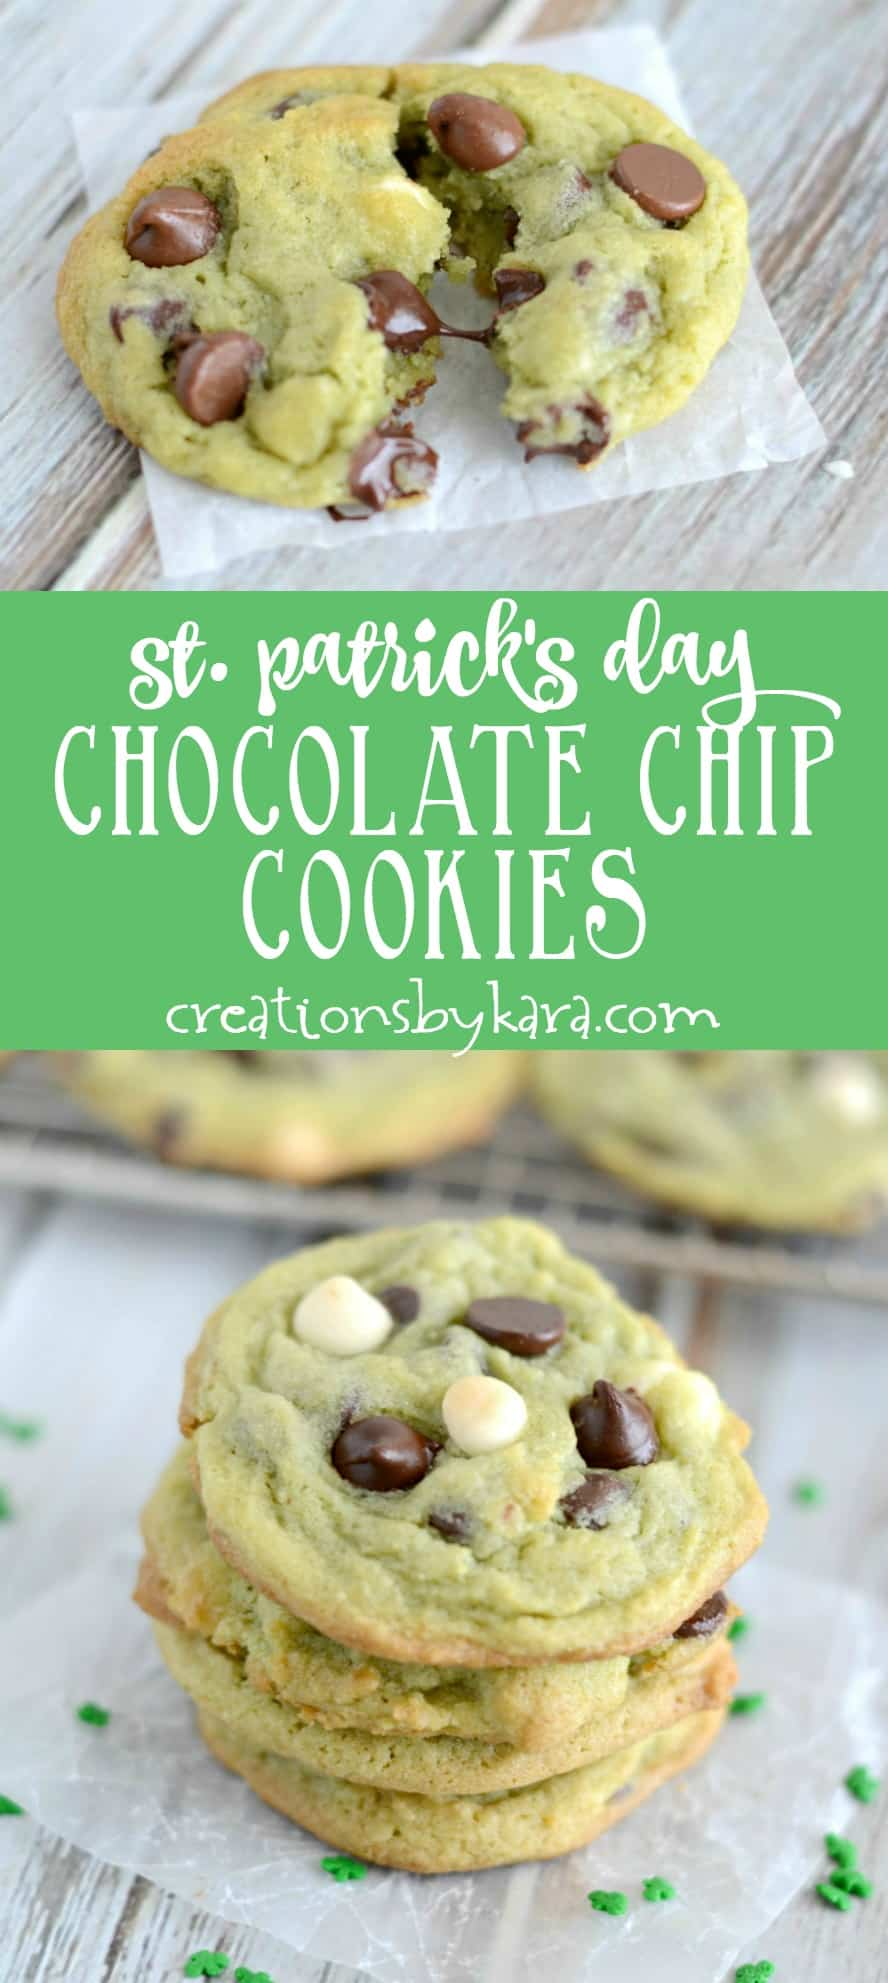 Pistachio pudding mix adds color and flavor to these St. Patrick's Day Chocolate Chip Cookies. A perfect St. Patrick's Day treat!